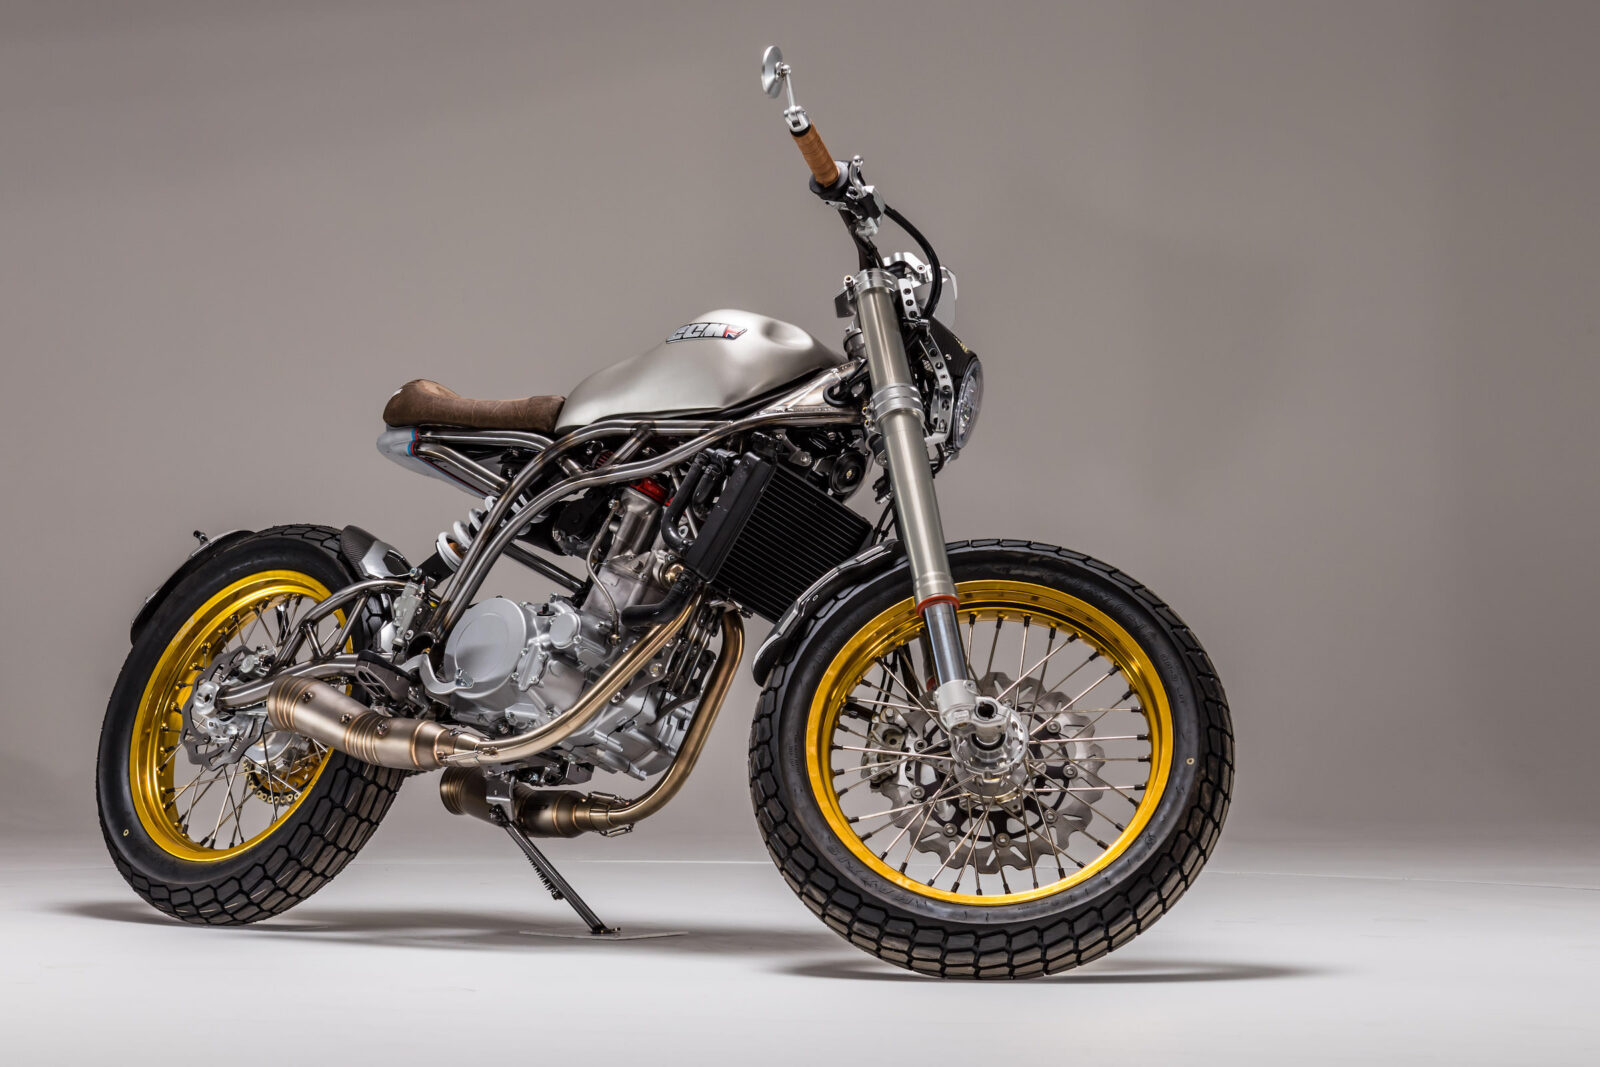 The CCM Spitfire - Possibly The World's Fastest Selling Hand-Built Production Motorcycle